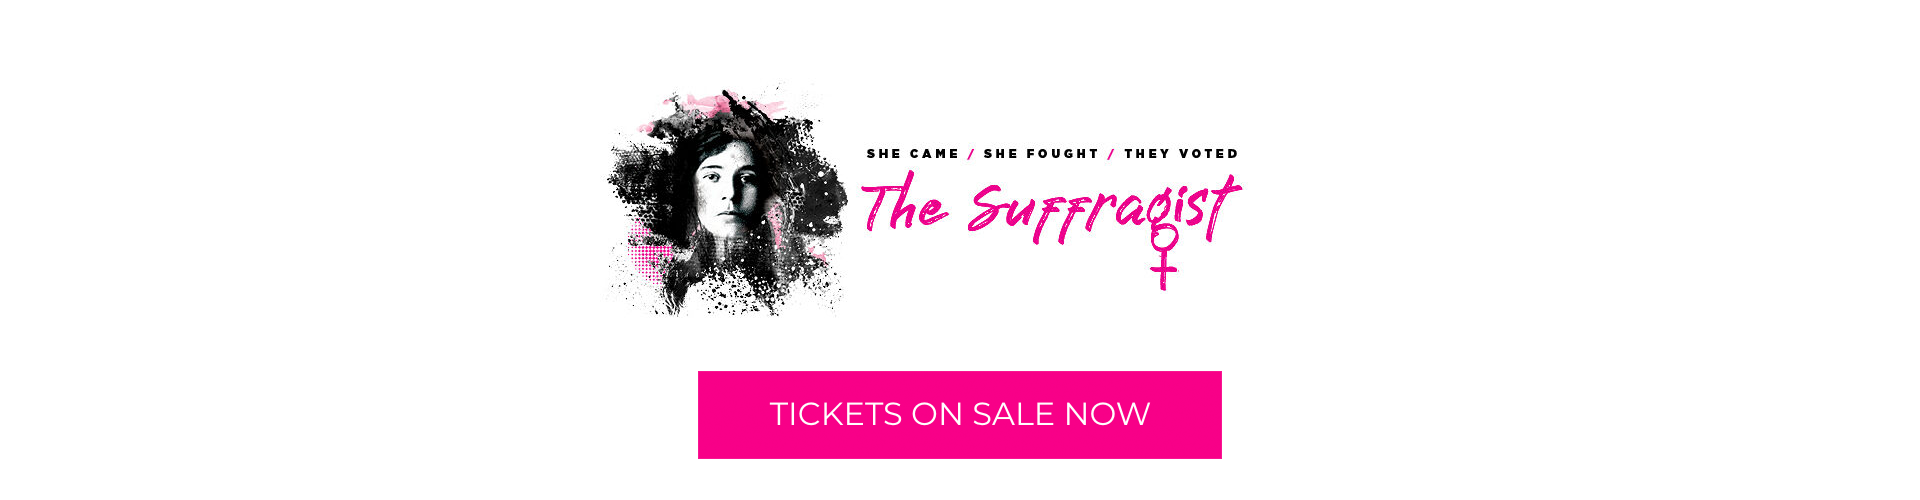 The Suffragist, tickets on sale now